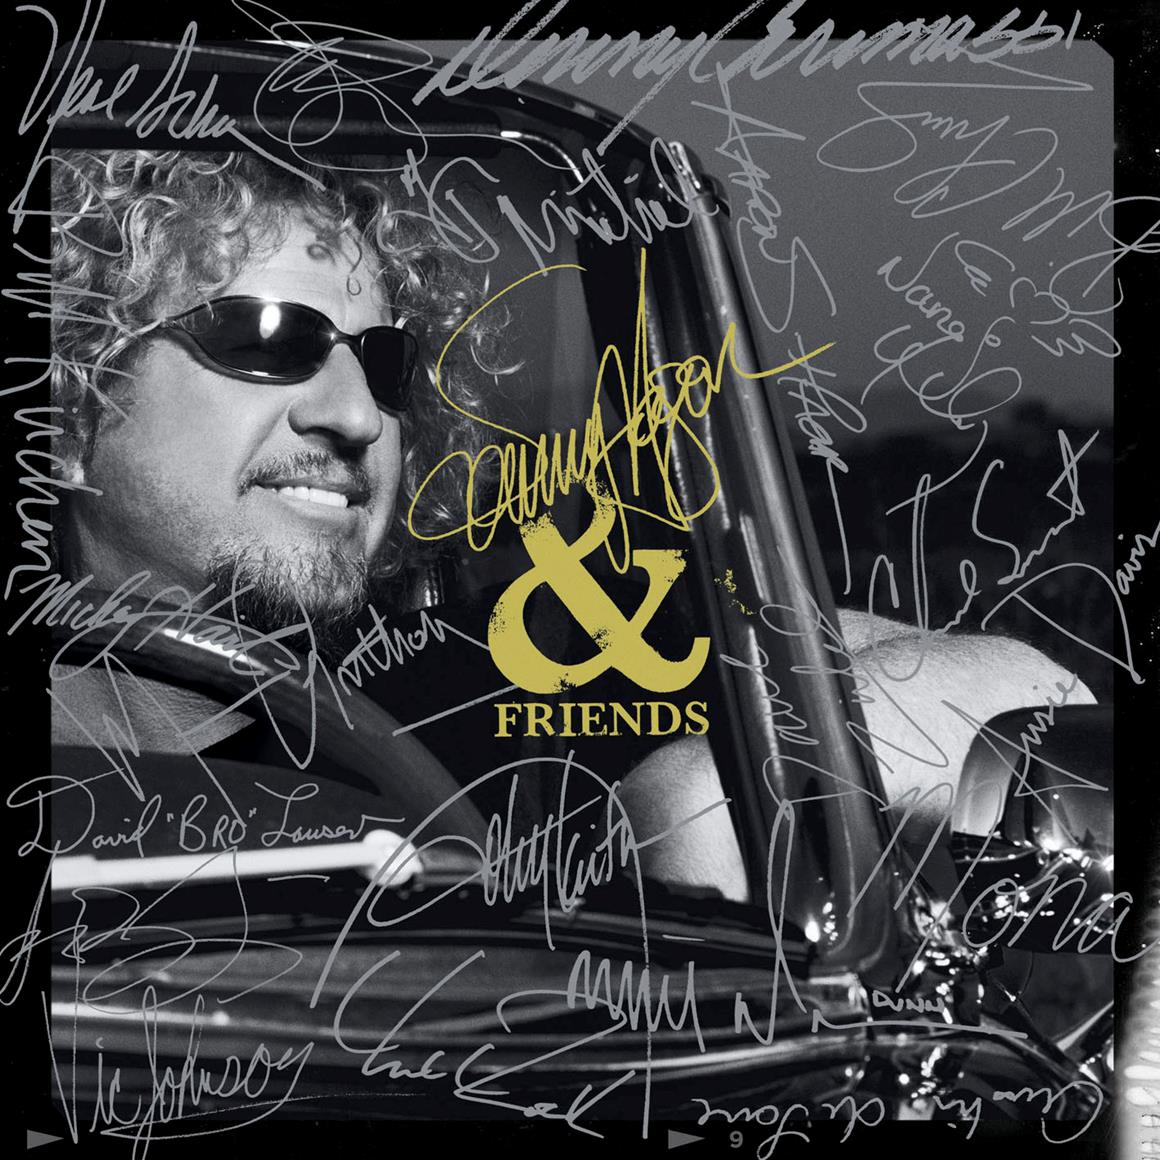 Sammy Hagar to release 'Sammy Hagar & Friends', first solo album in five years